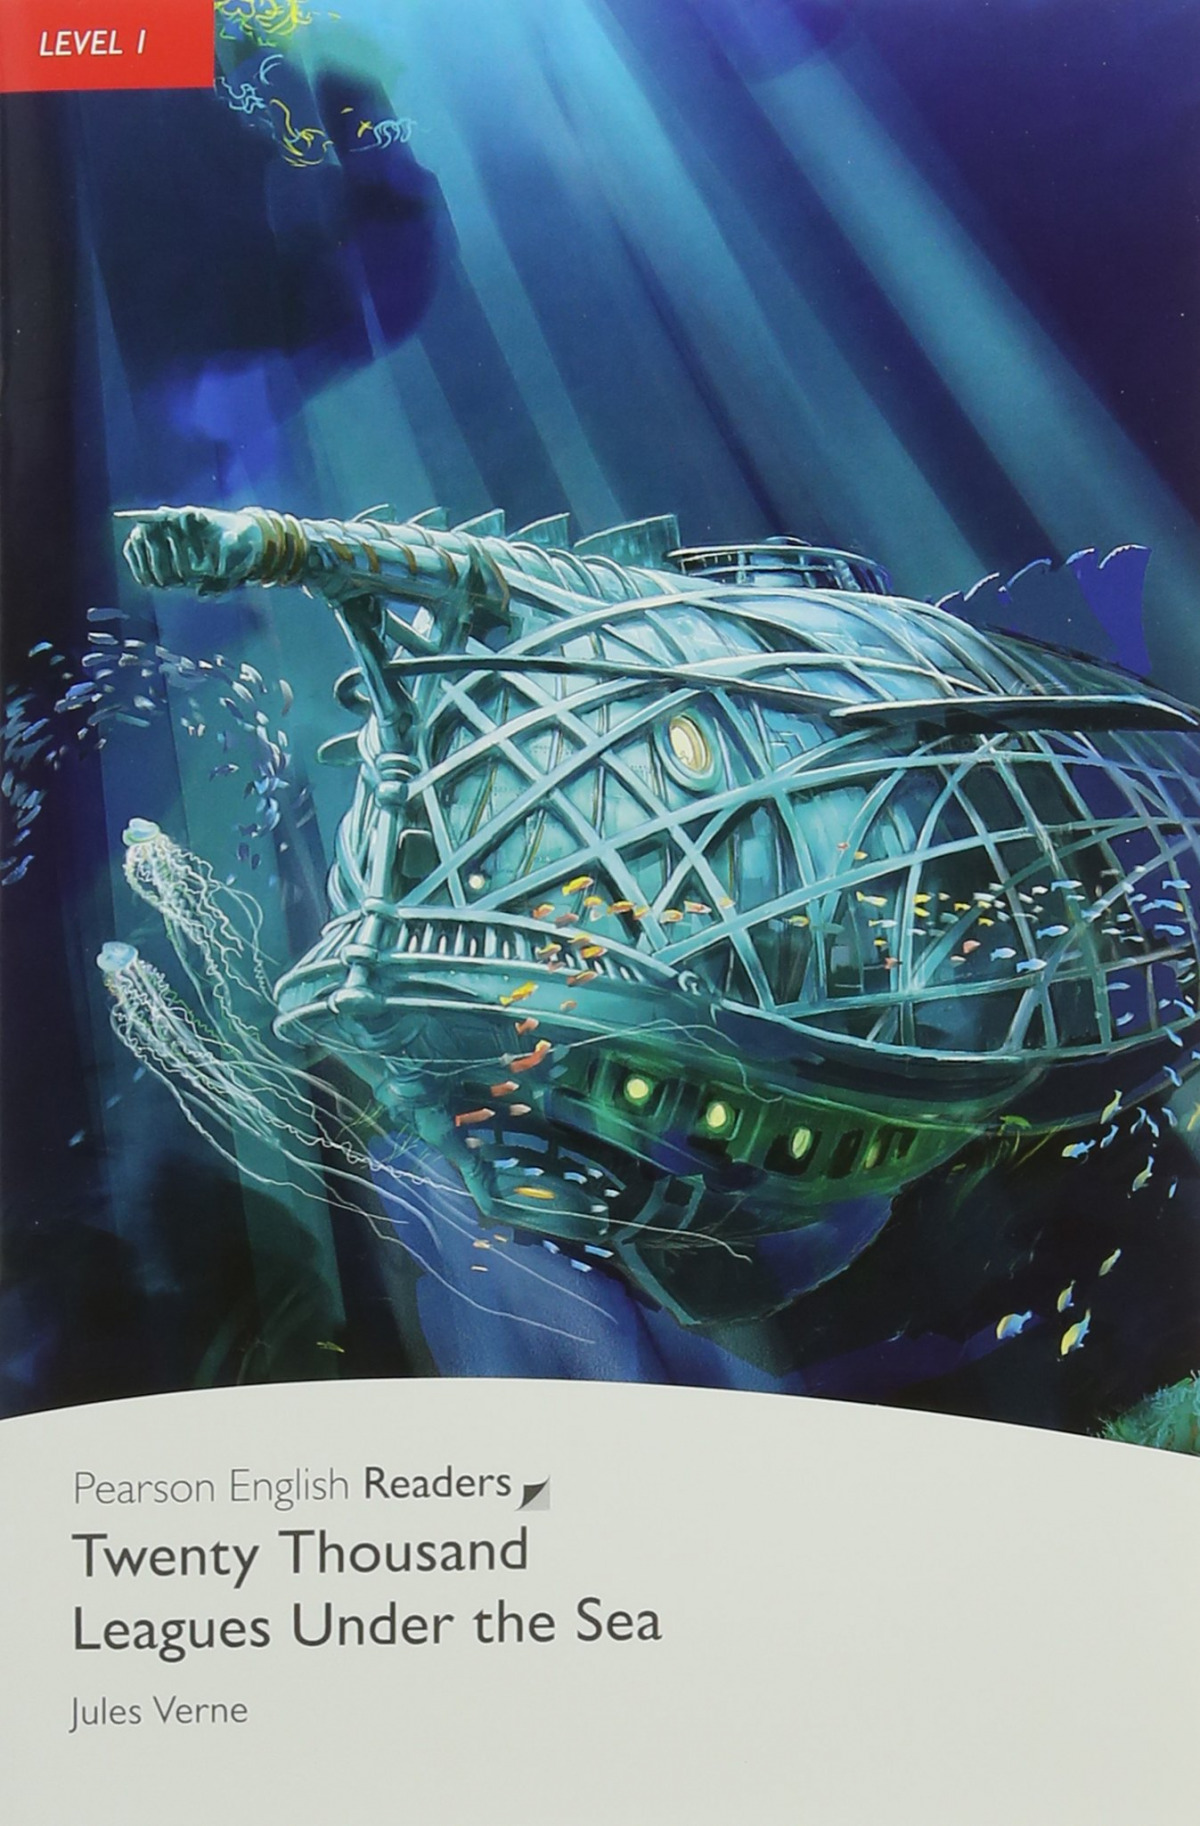 Twenty thousand leagues - Verne, Jules